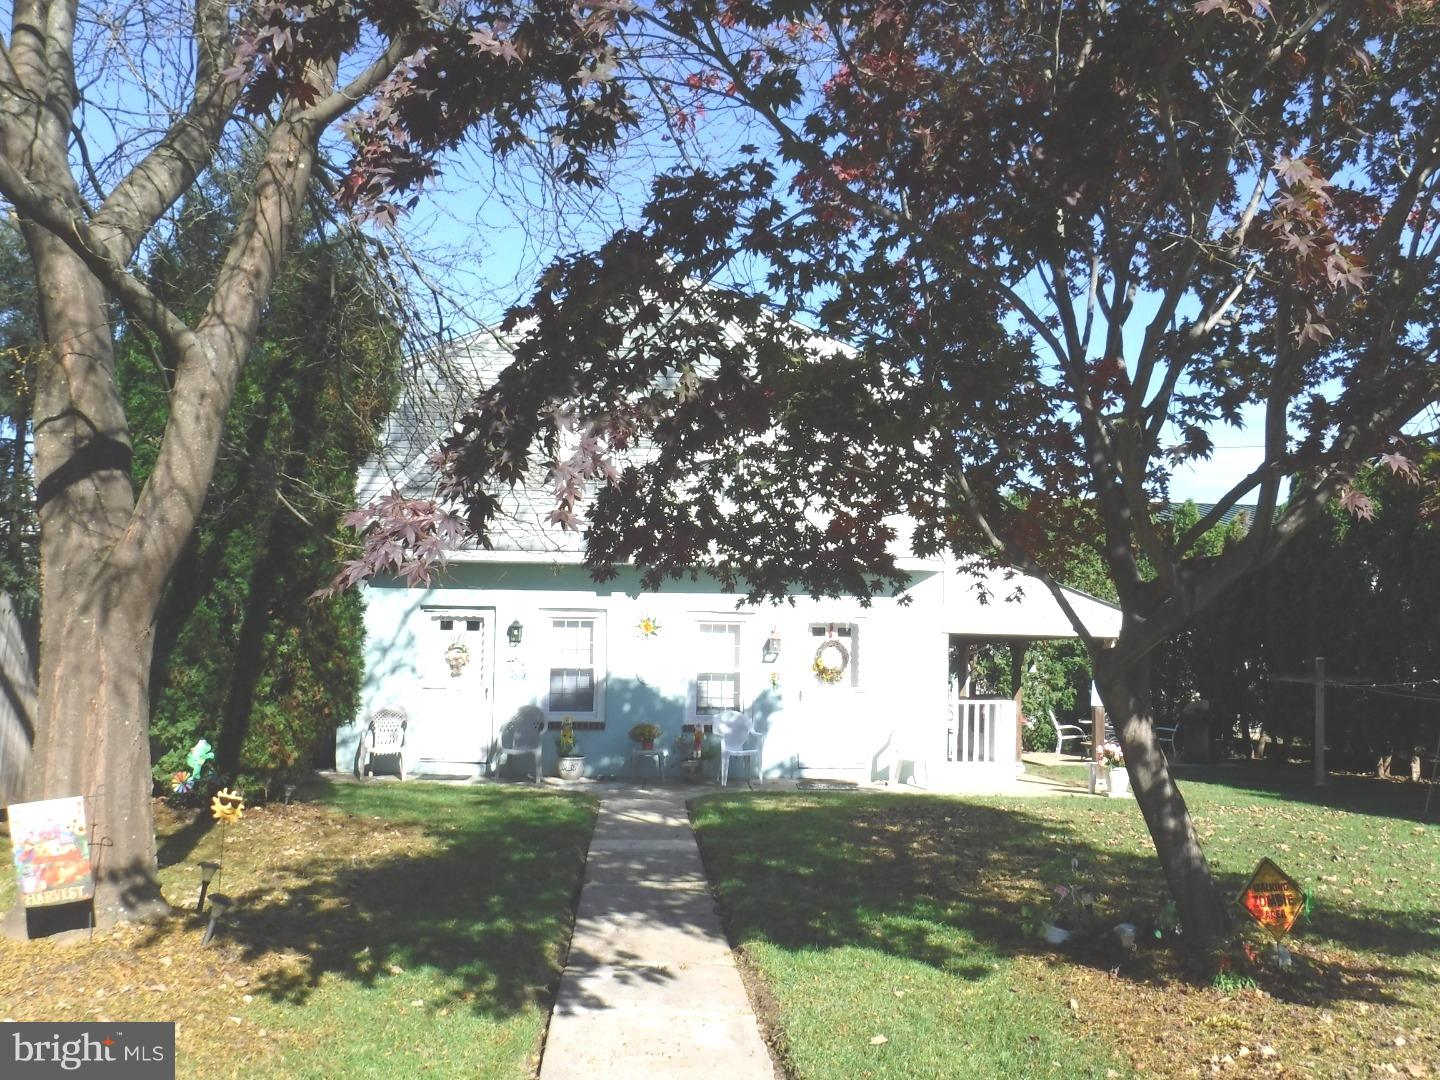 19047 0 Bedroom Home For Sale